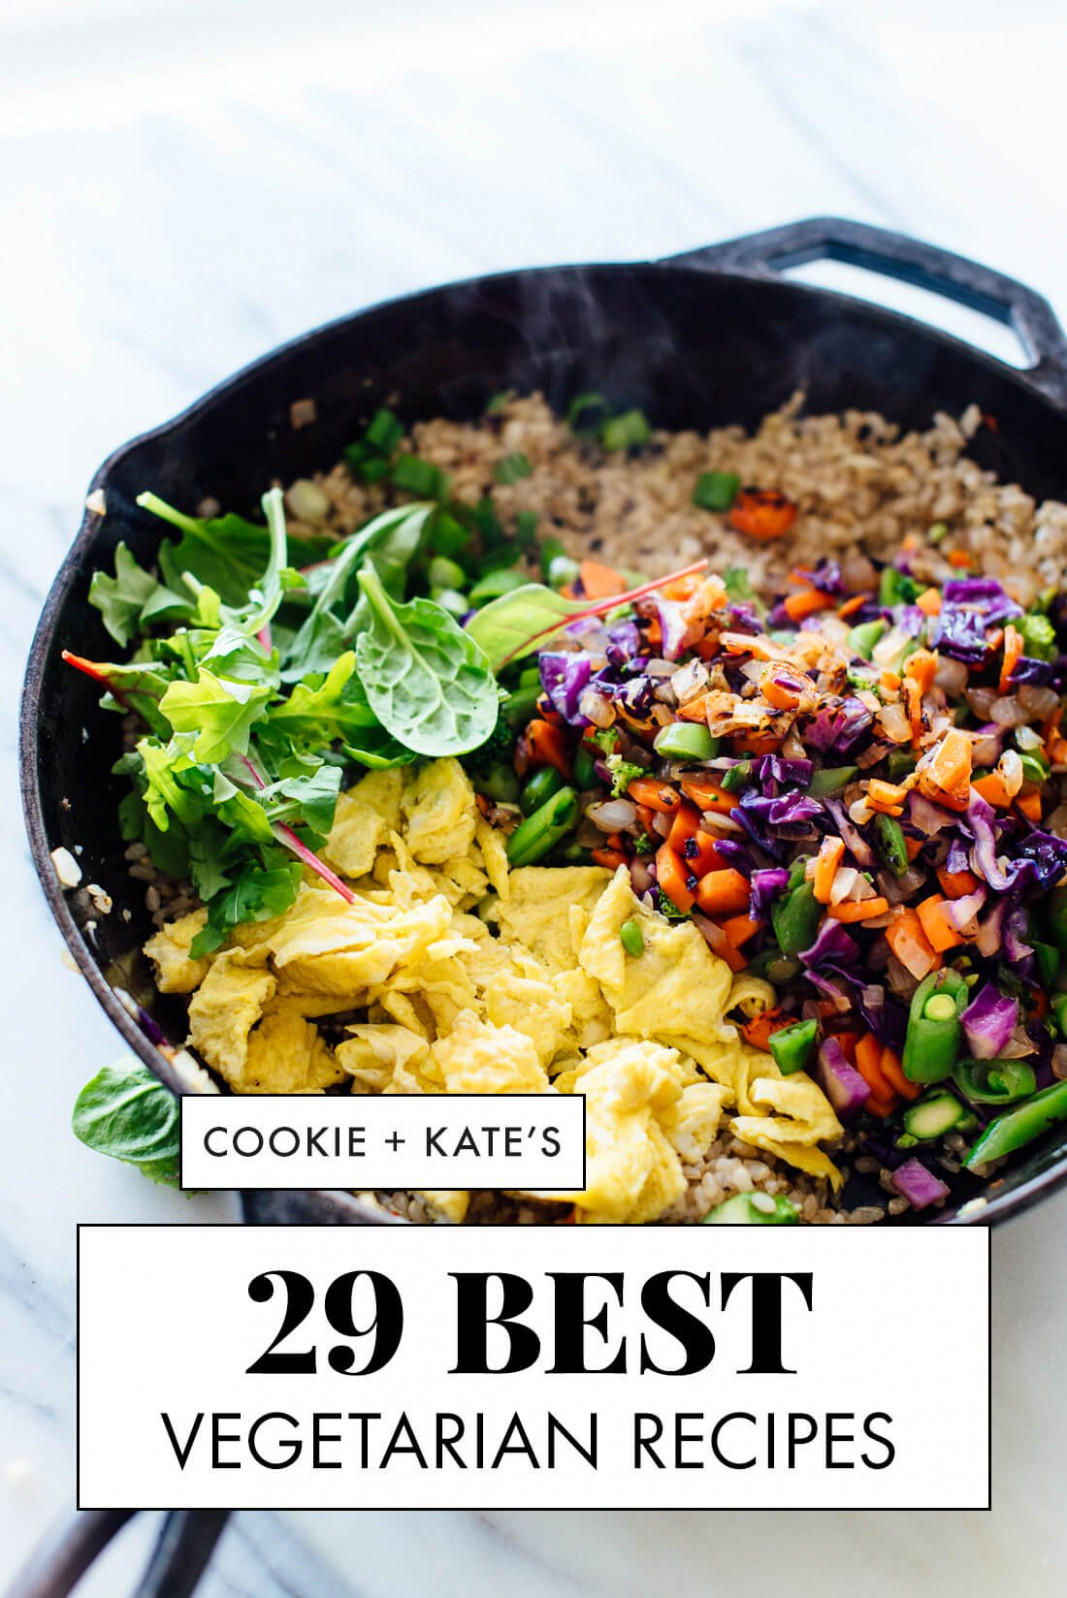 11 Best Vegetarian Recipes - Cookie and Kate - unique indian recipes vegetarian